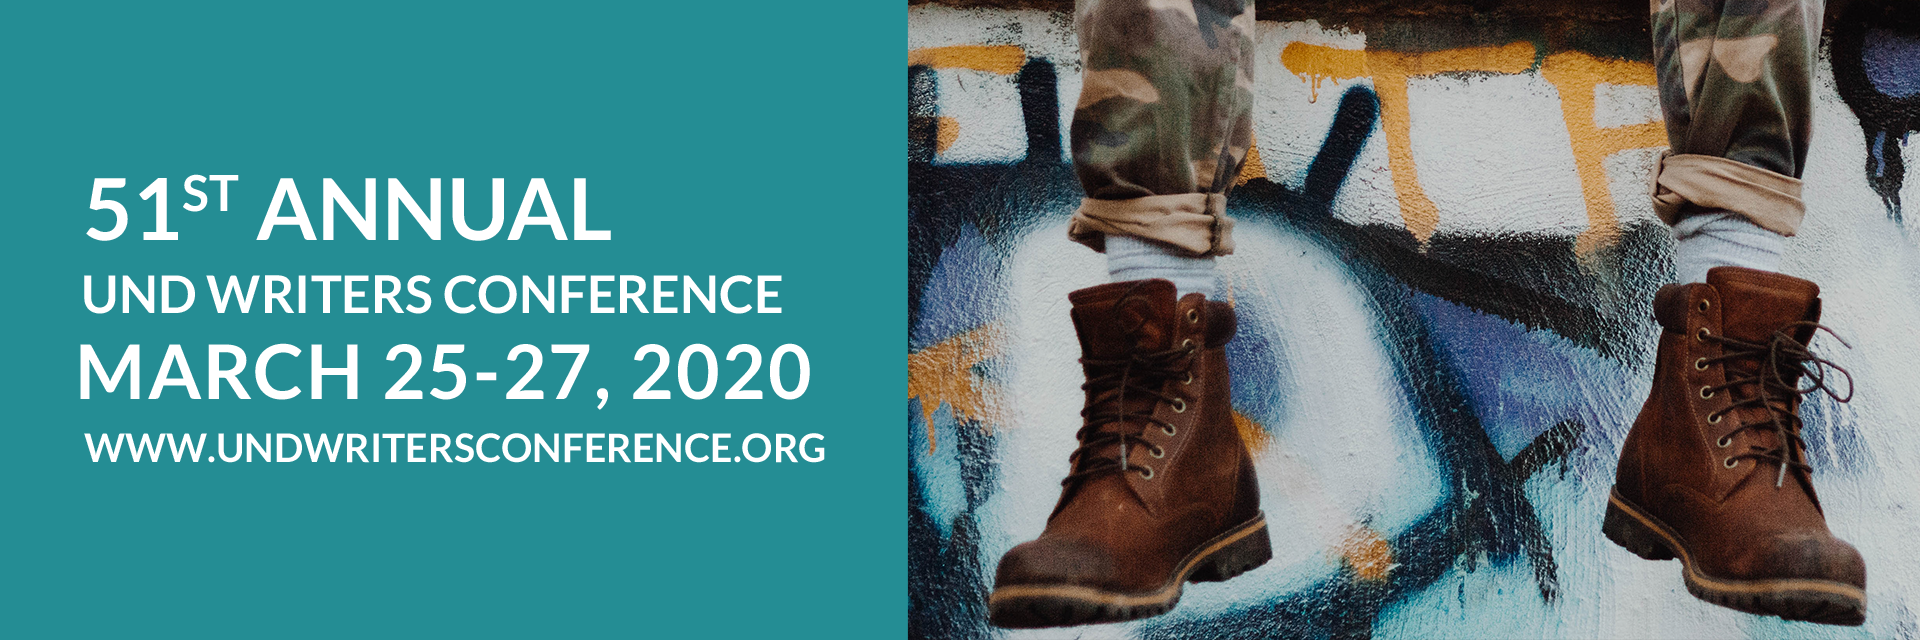 2020 UND Writers Conference